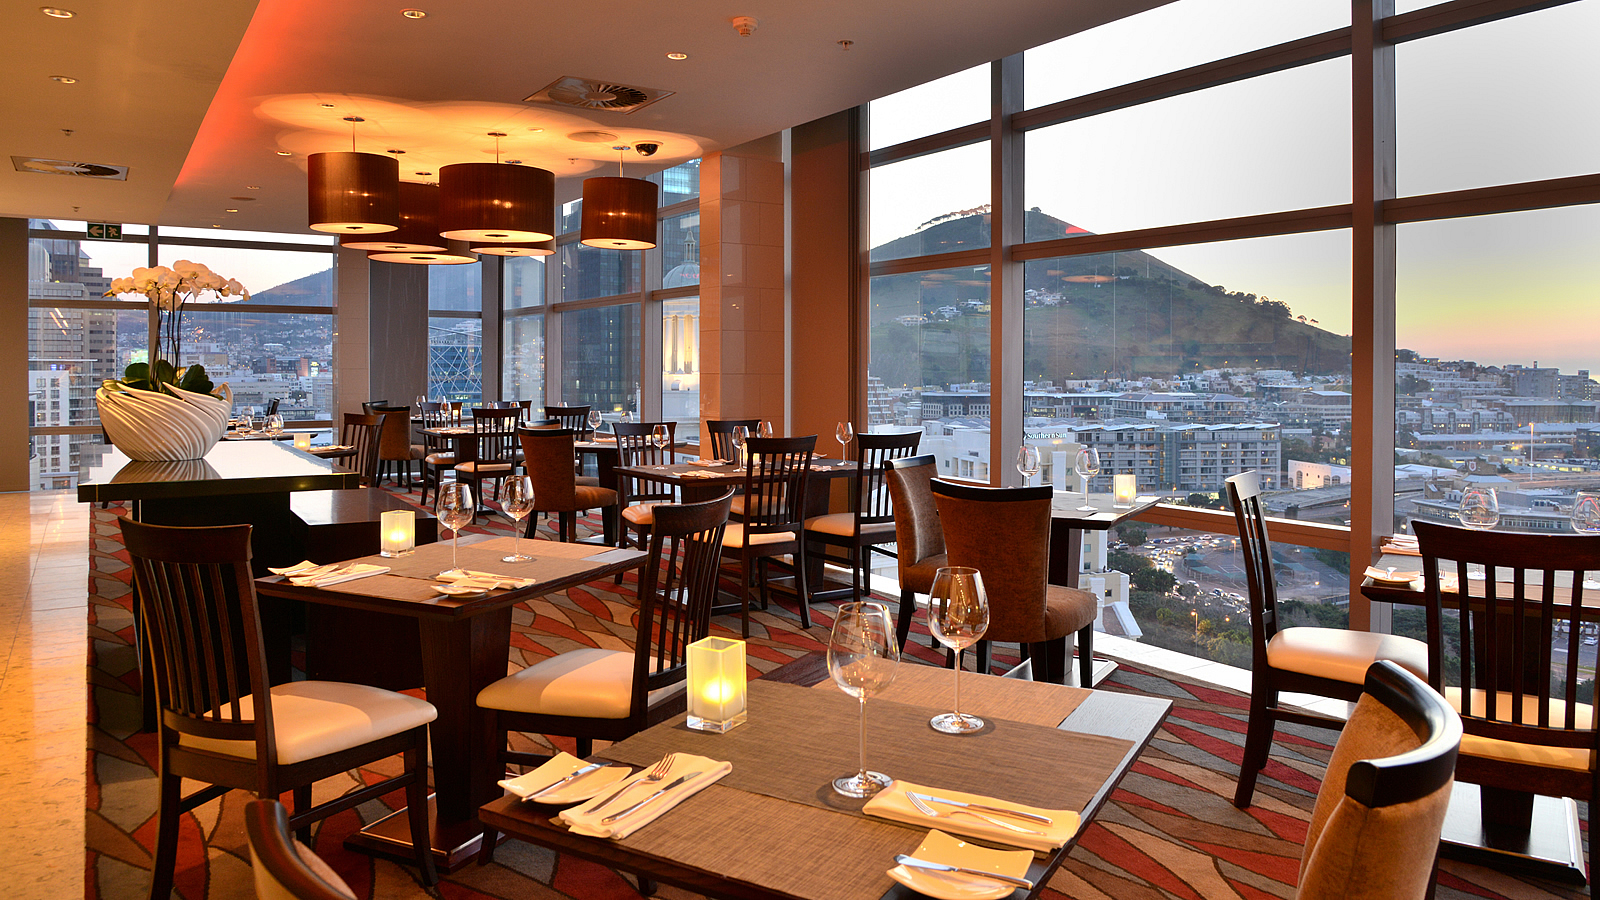 ON19 Restaurant Dining Room overlooking Signal Hill and V&A Waterfront